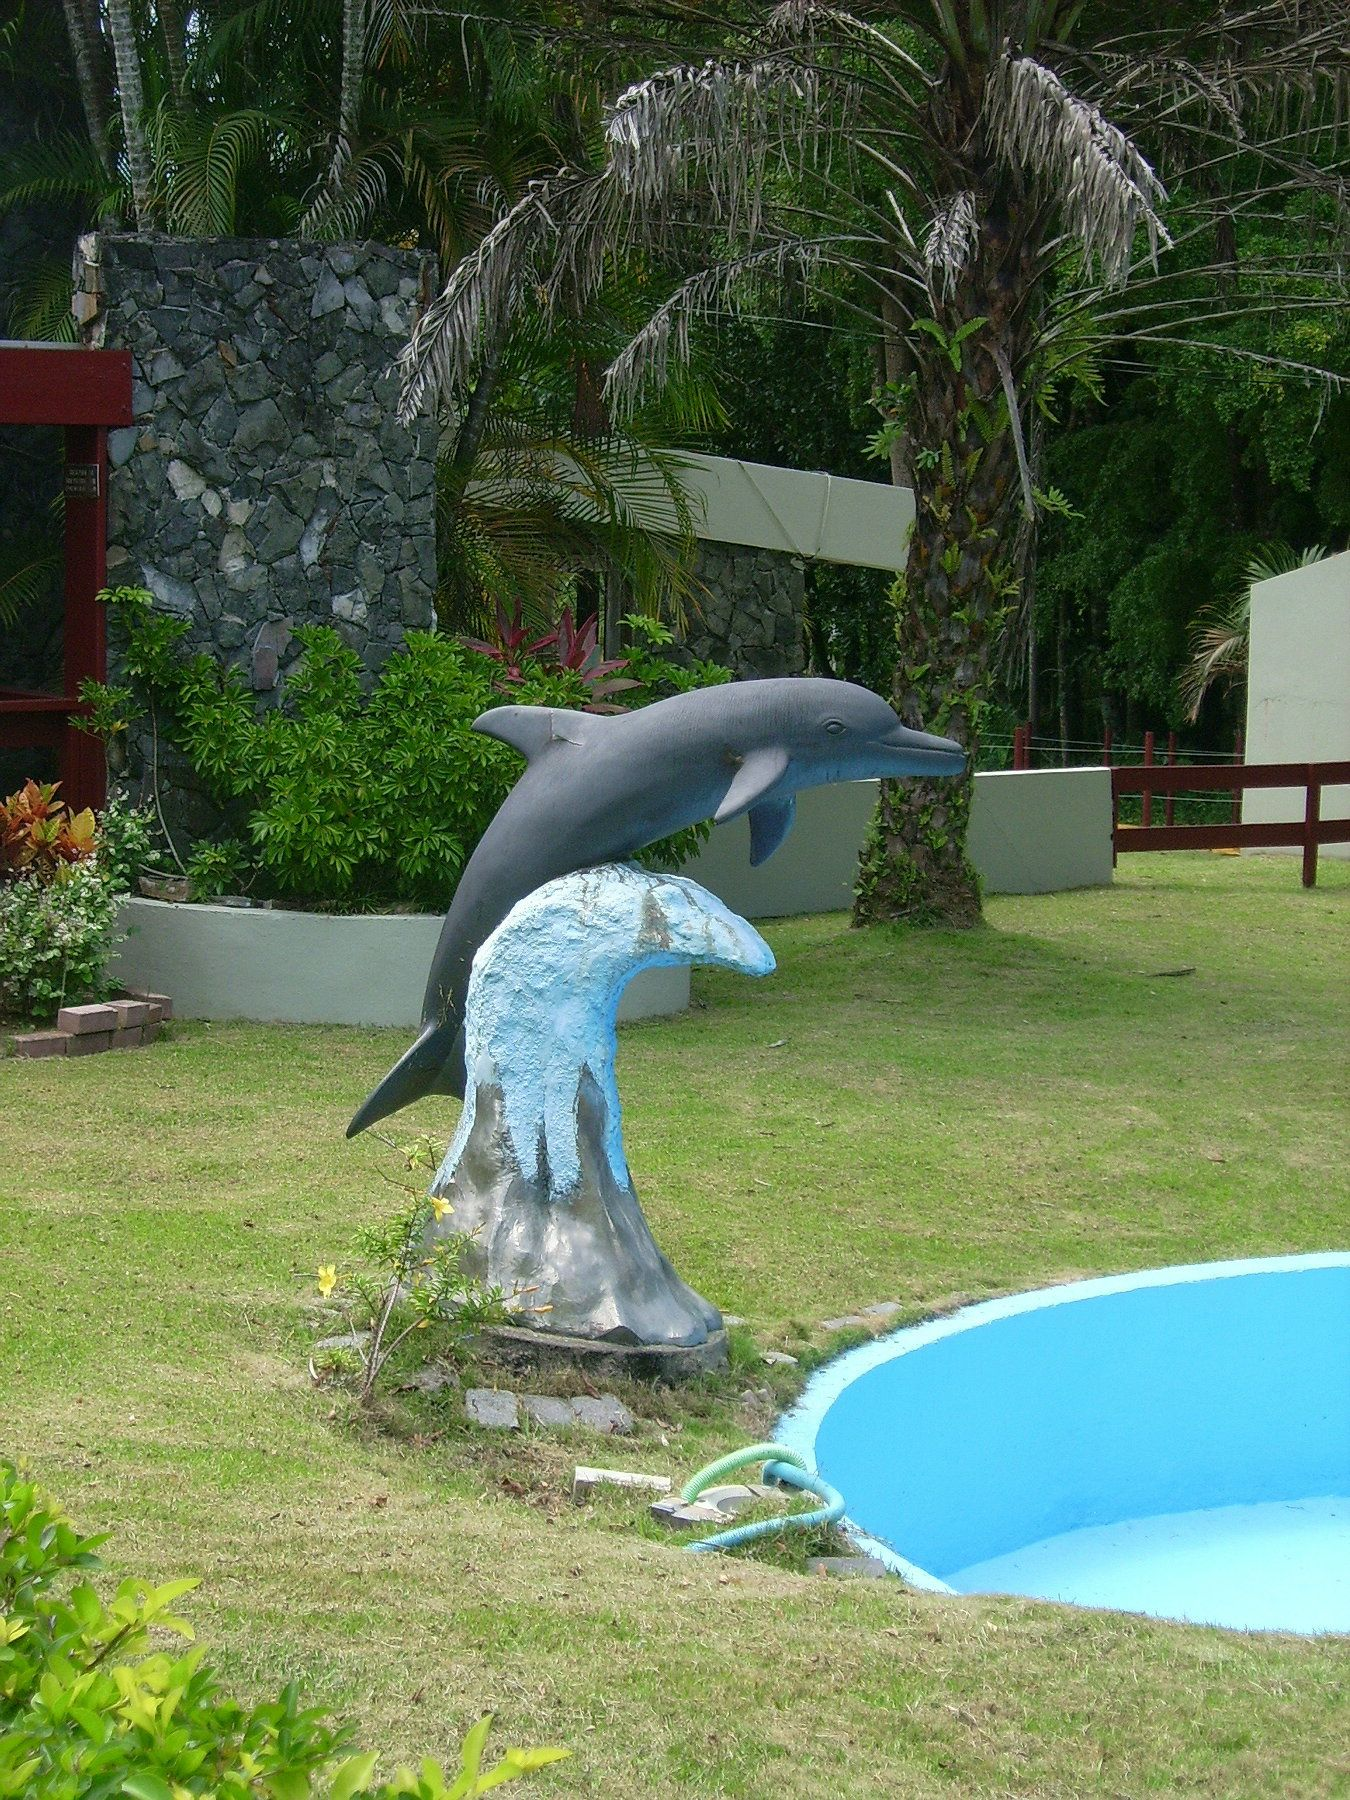 A Dolphin Statue.